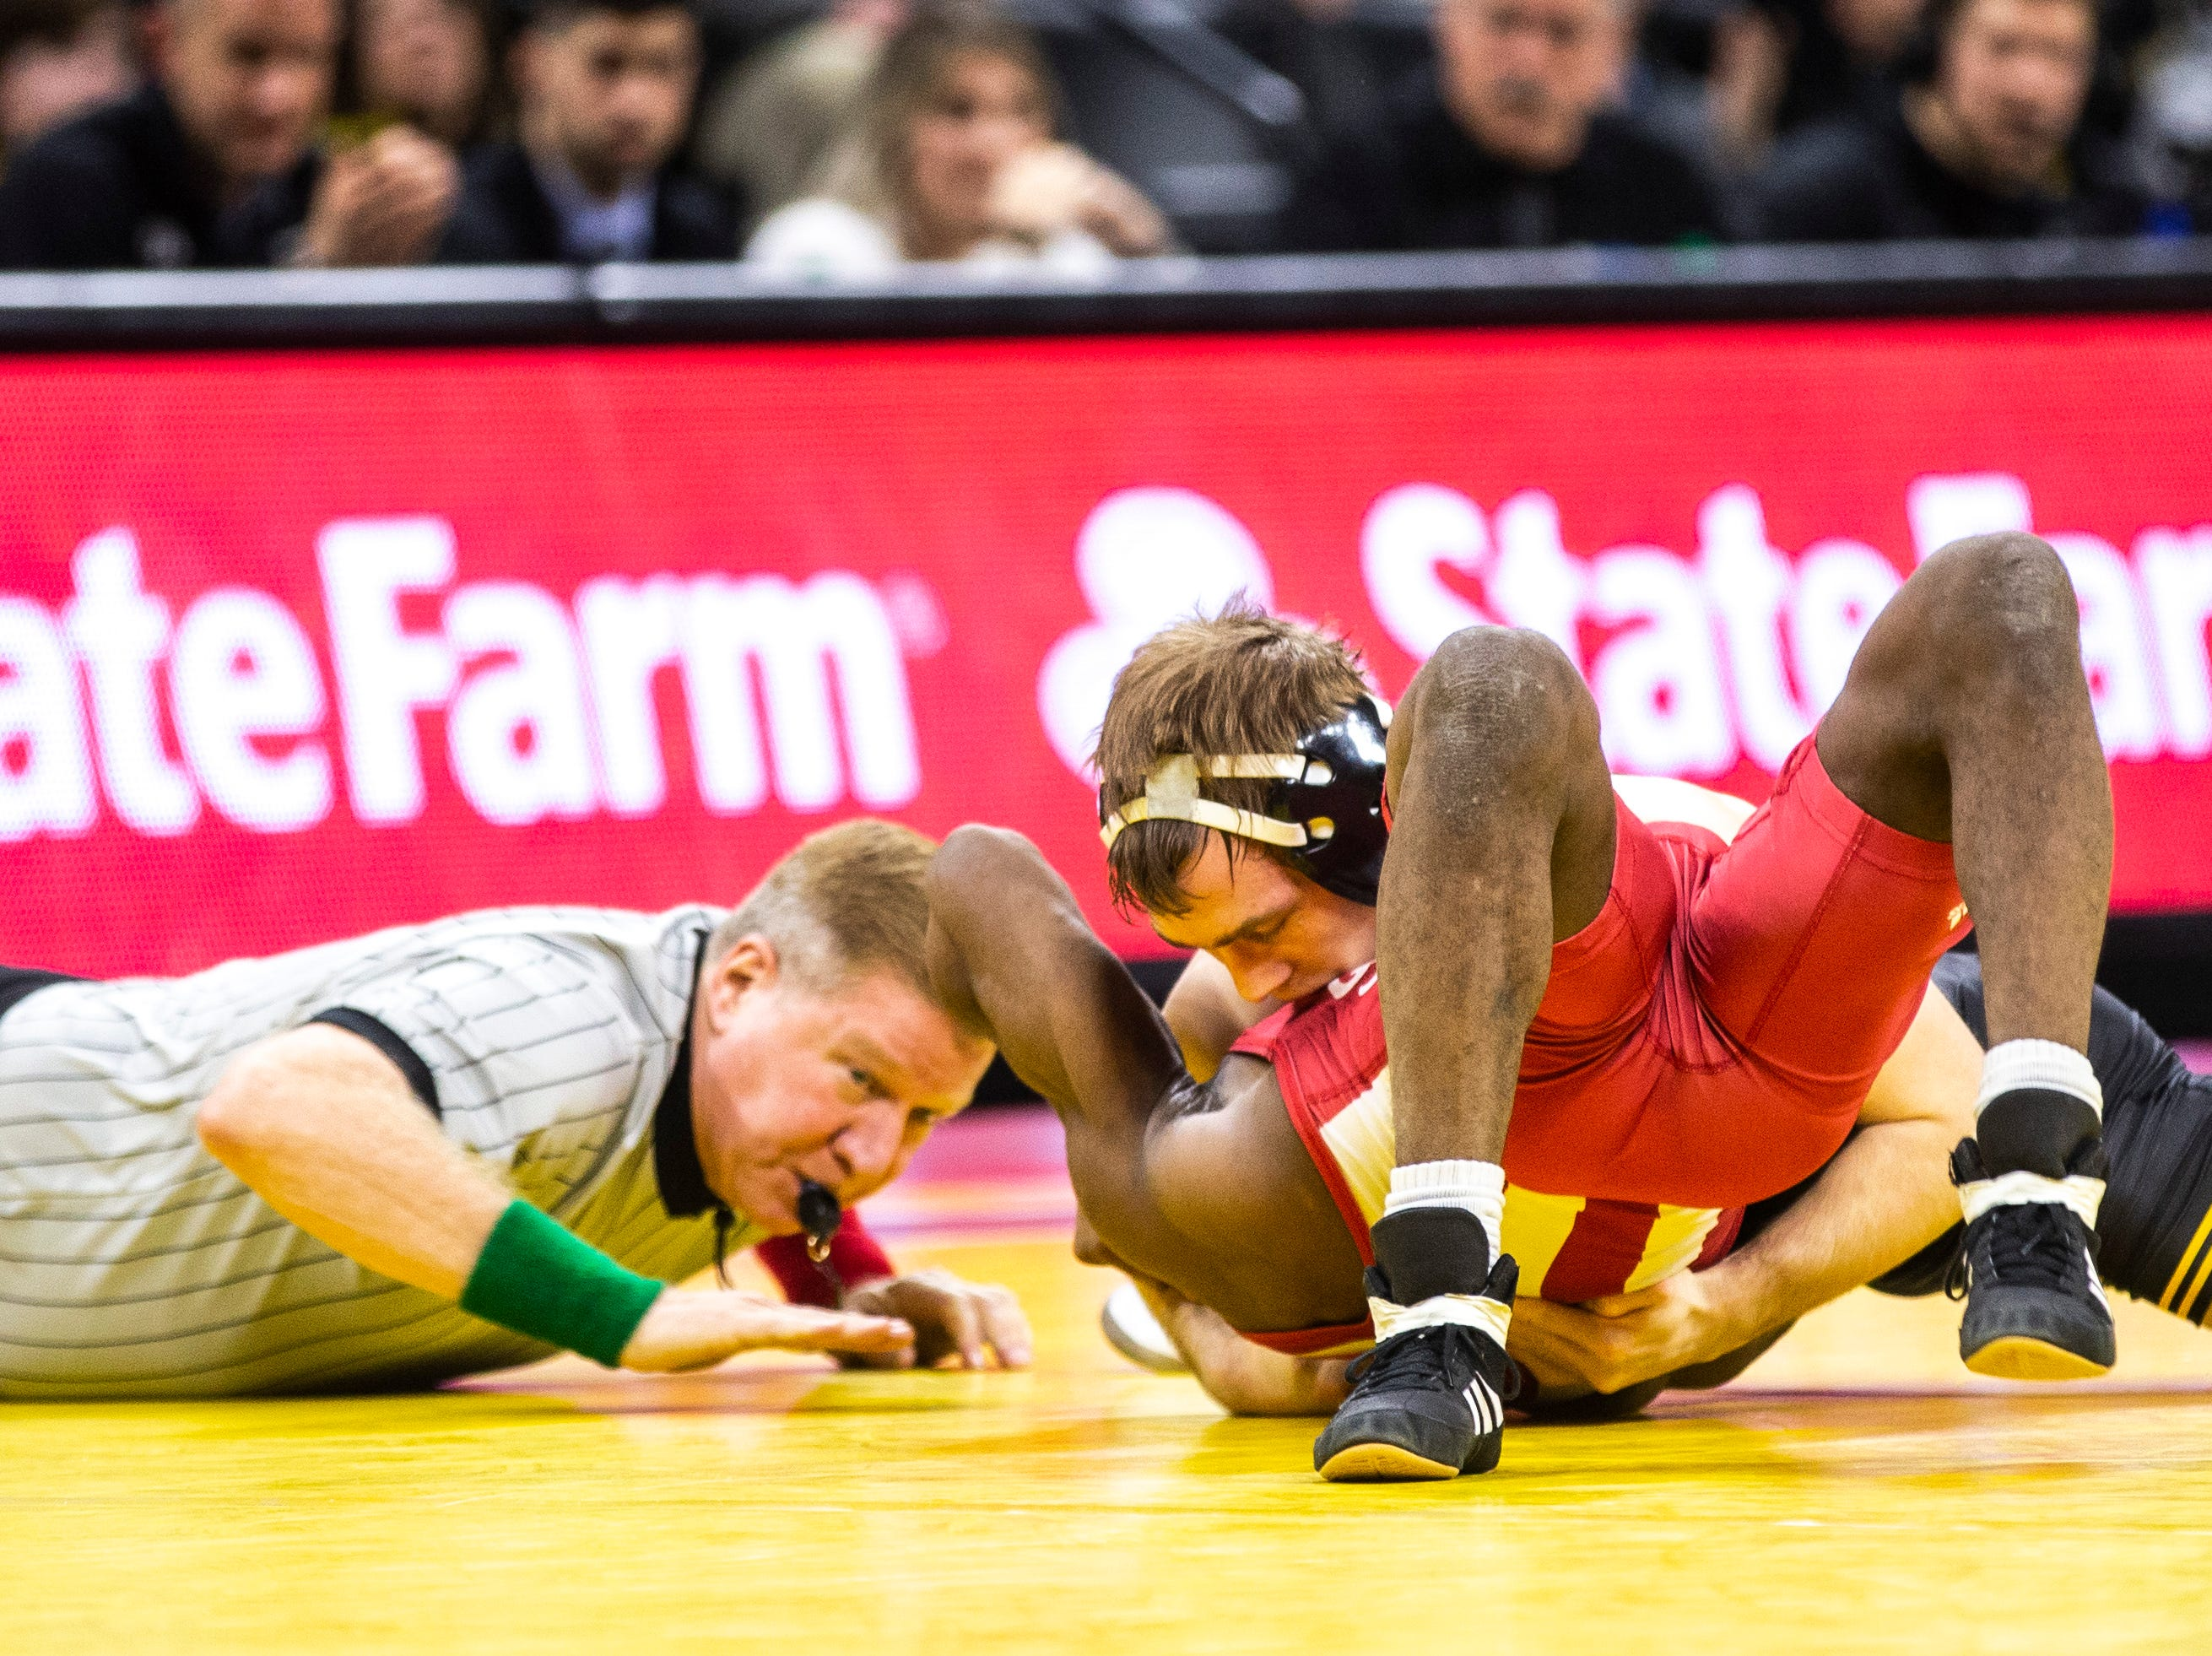 Iowa's Spencer Lee pins Indiana's Elijah Oliver at 125 during a NCAA Big Ten Conference wrestling dual on Friday, Feb. 15, 2019 at Carver-Hawkeye Arena in Iowa City, Iowa.